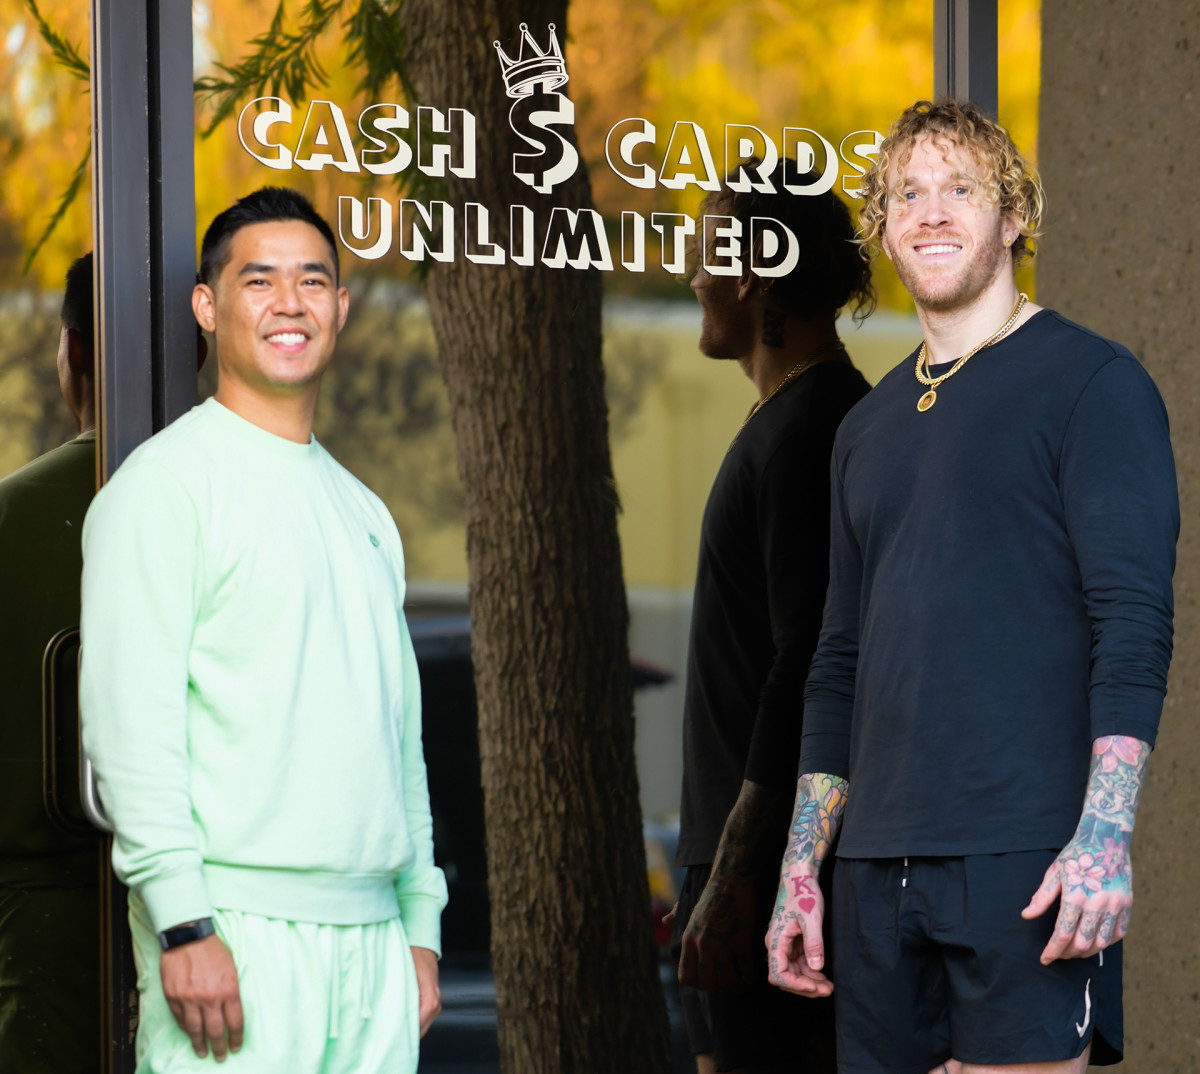 Cassius Marsh and business manager Nick Nugwynne outside their new store selling collectible cards in Westlake Village, California